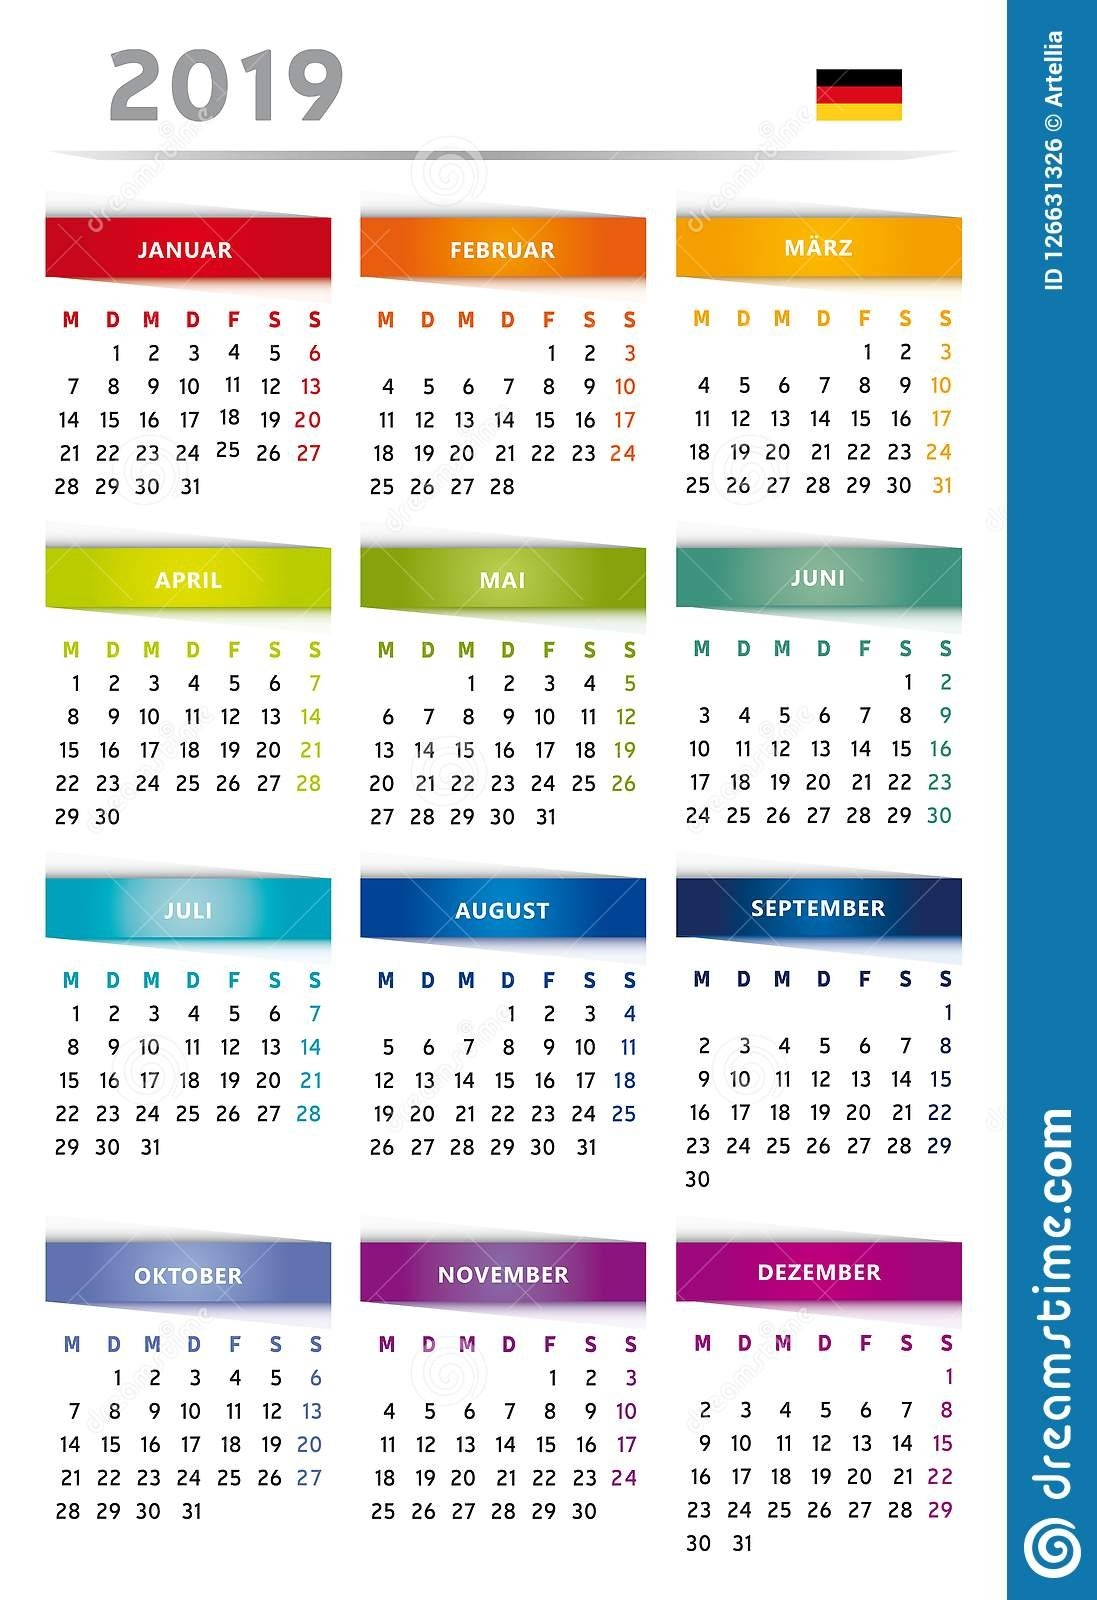 2019 Calendar With Boxes In Rainbow Colors 4 Trimesters - 3 Columns 4 Column Calendar 2019